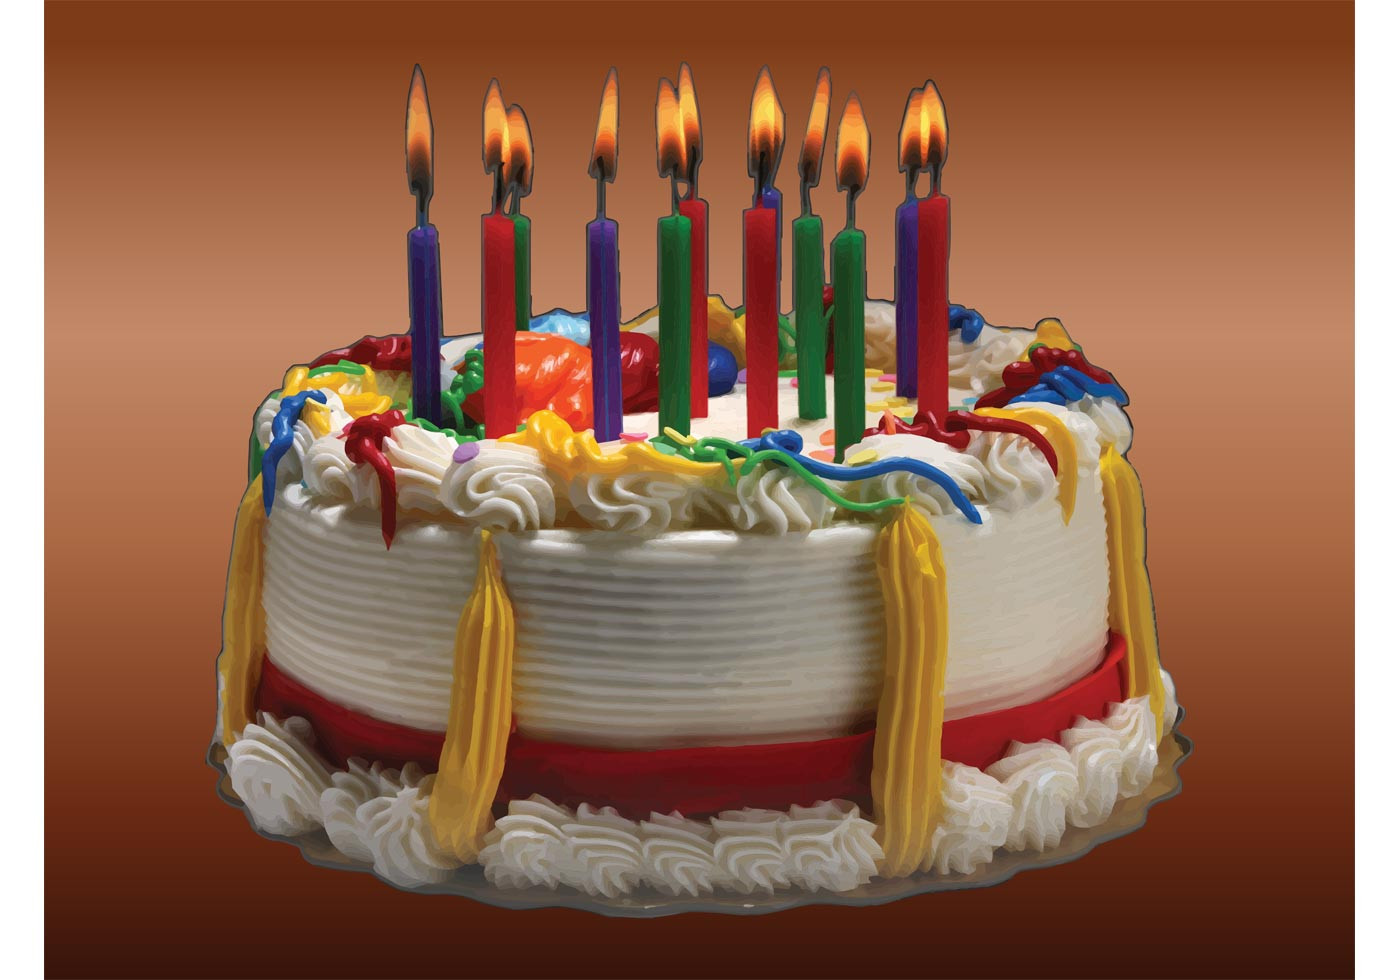 Image Of Birthday Cake  Birthday Cake Image Download Free Vector Art Stock